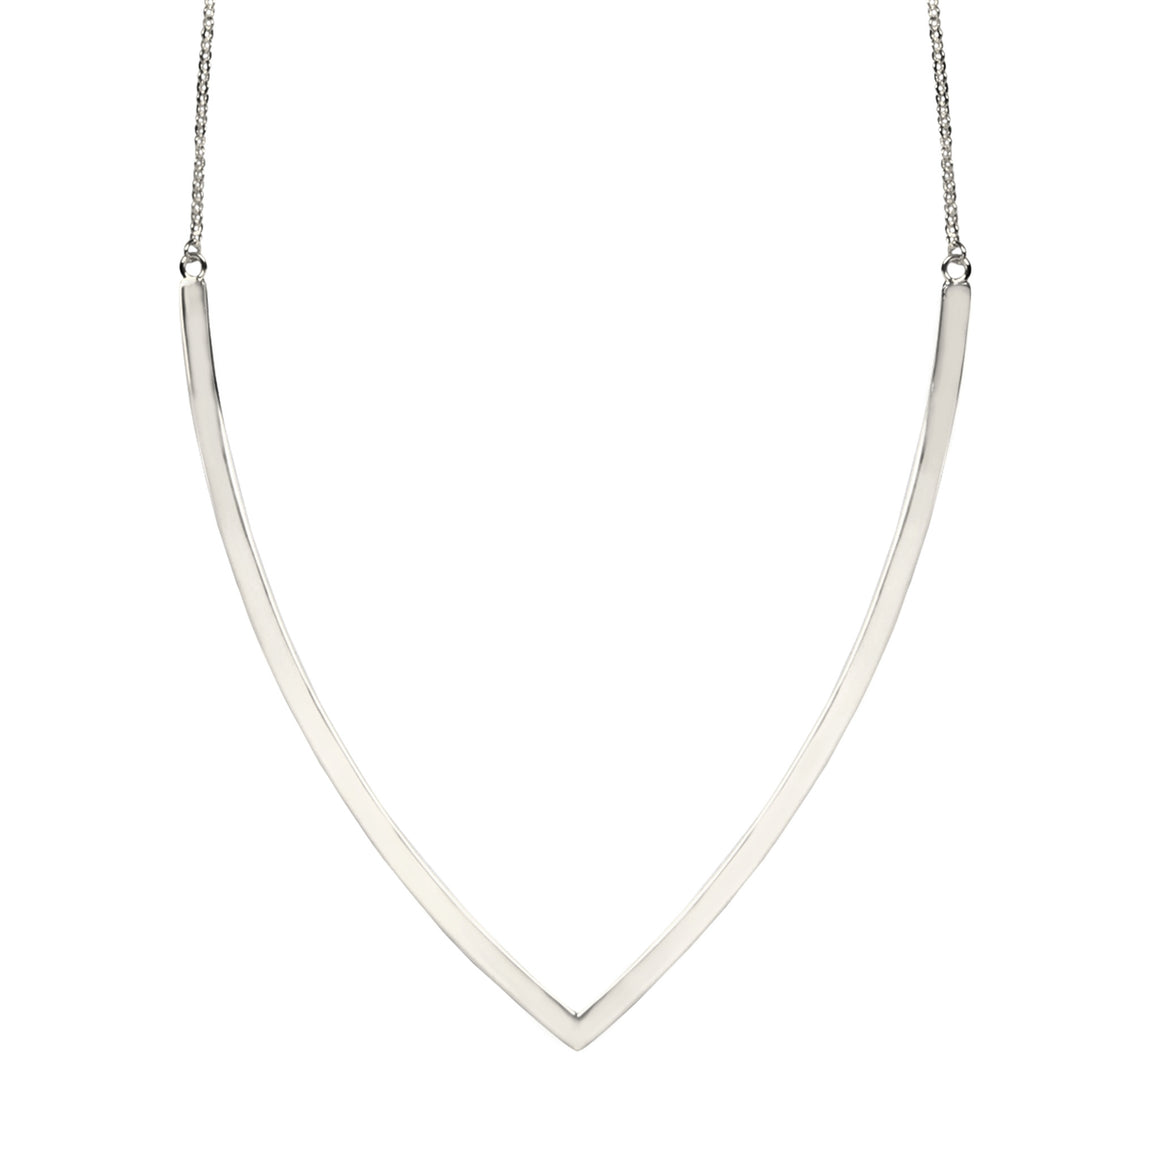 V COLLAR NECKLACE IN 925 STERLING SILVER